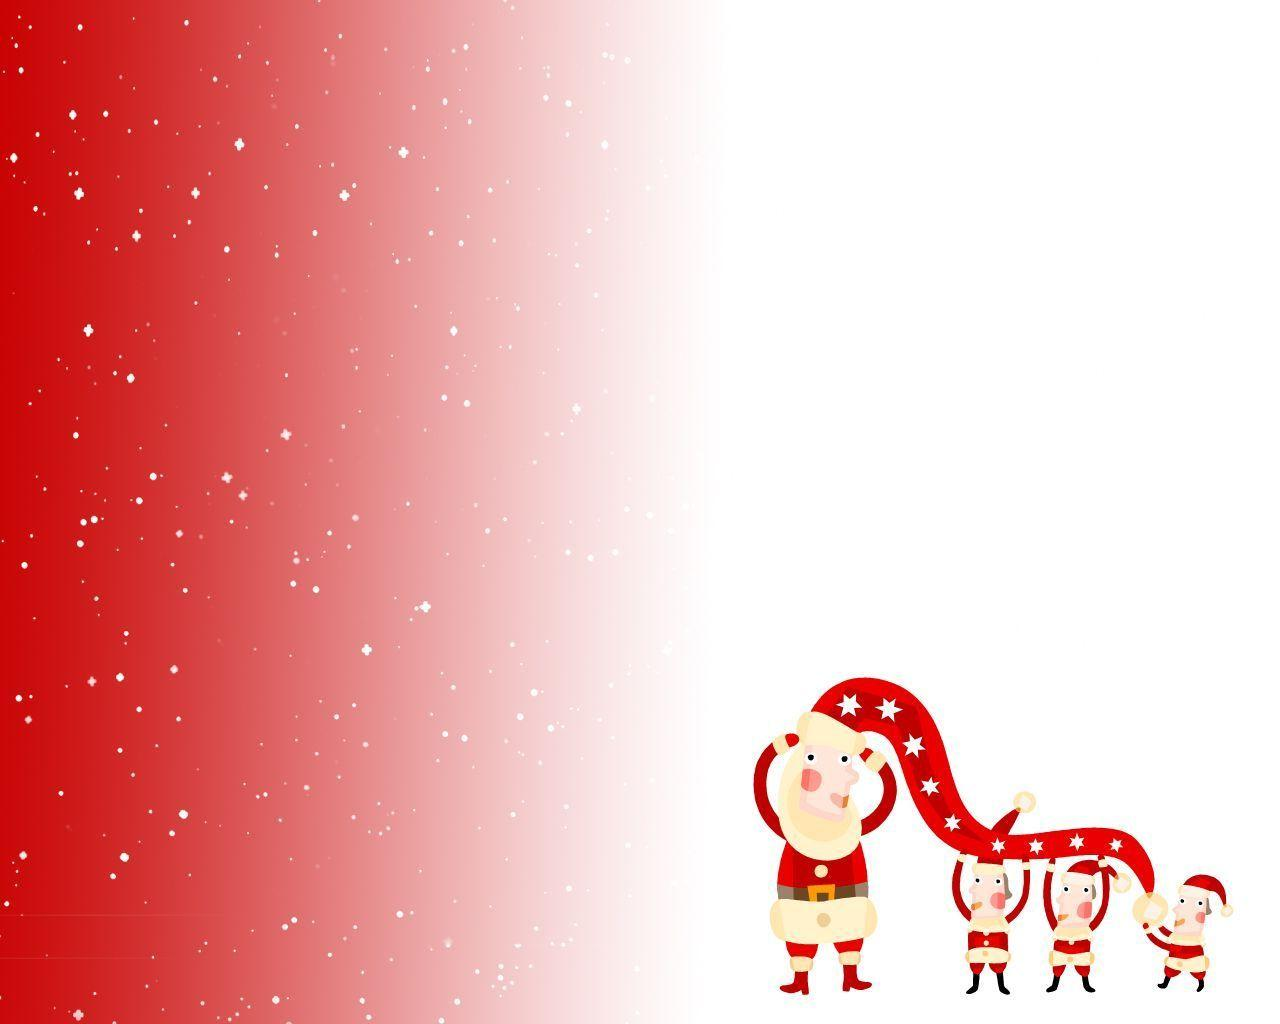 cute cartoon holiday wallpaper - photo #27